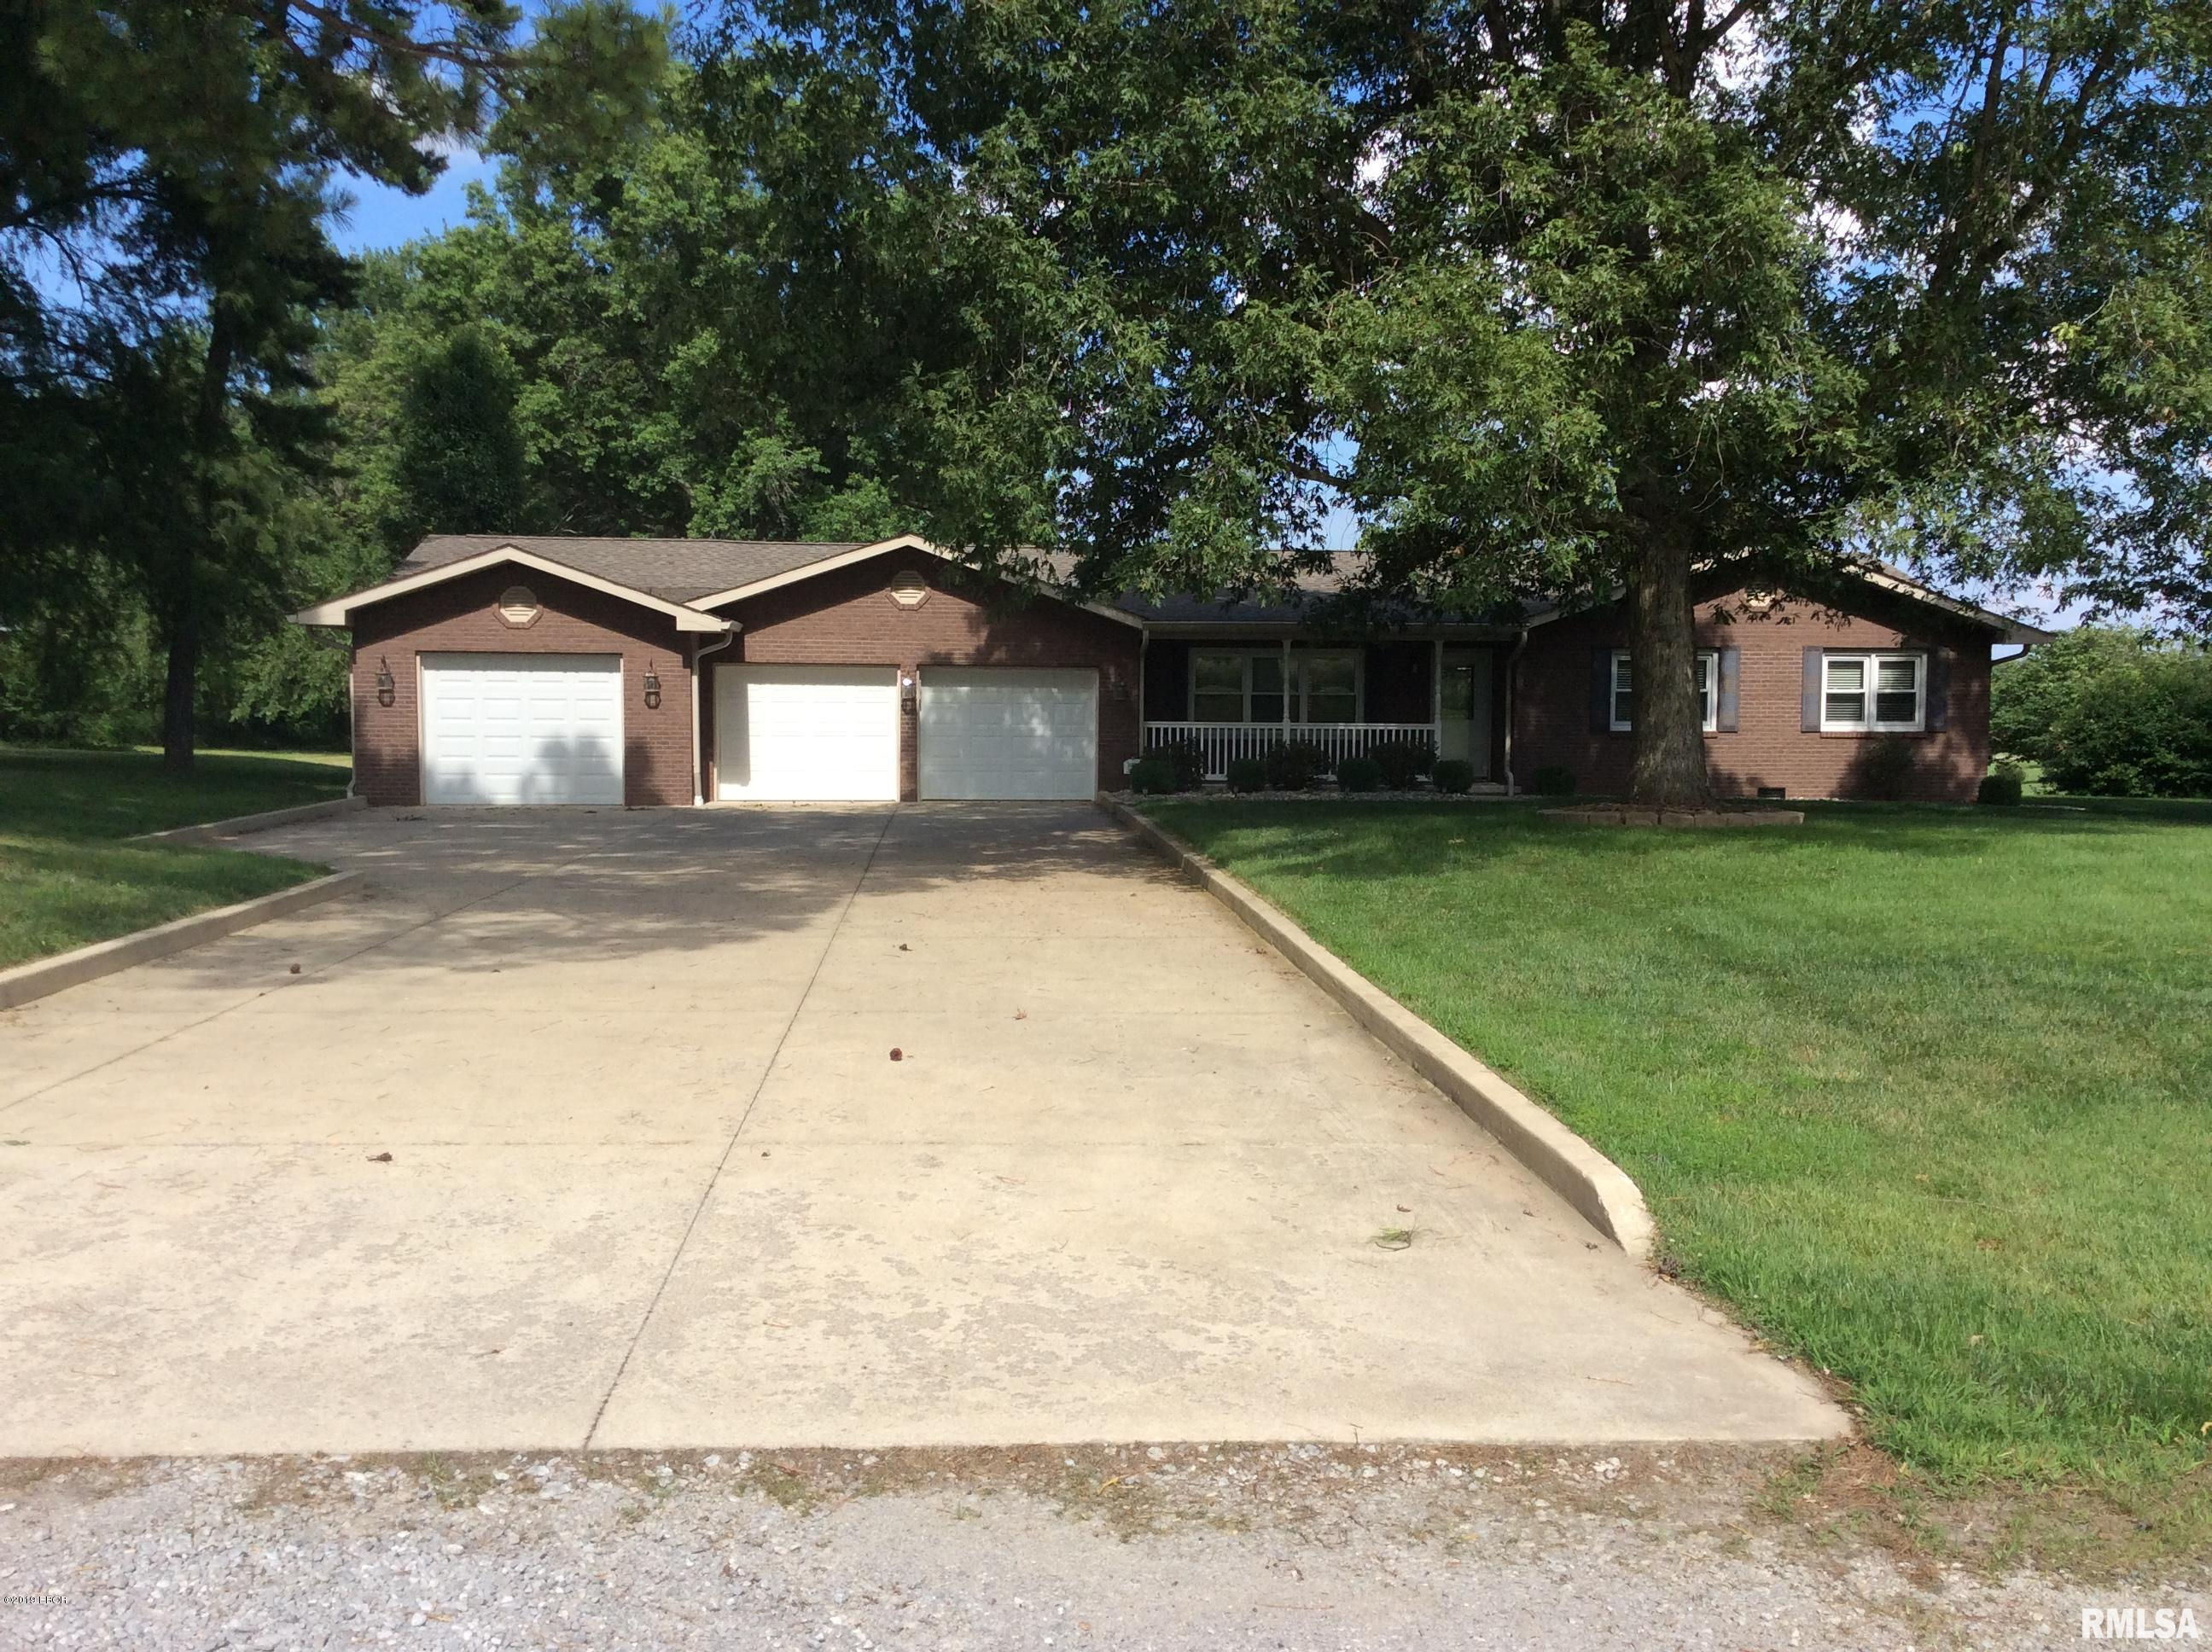 1508 N MAIN Property Photo - Dix, IL real estate listing